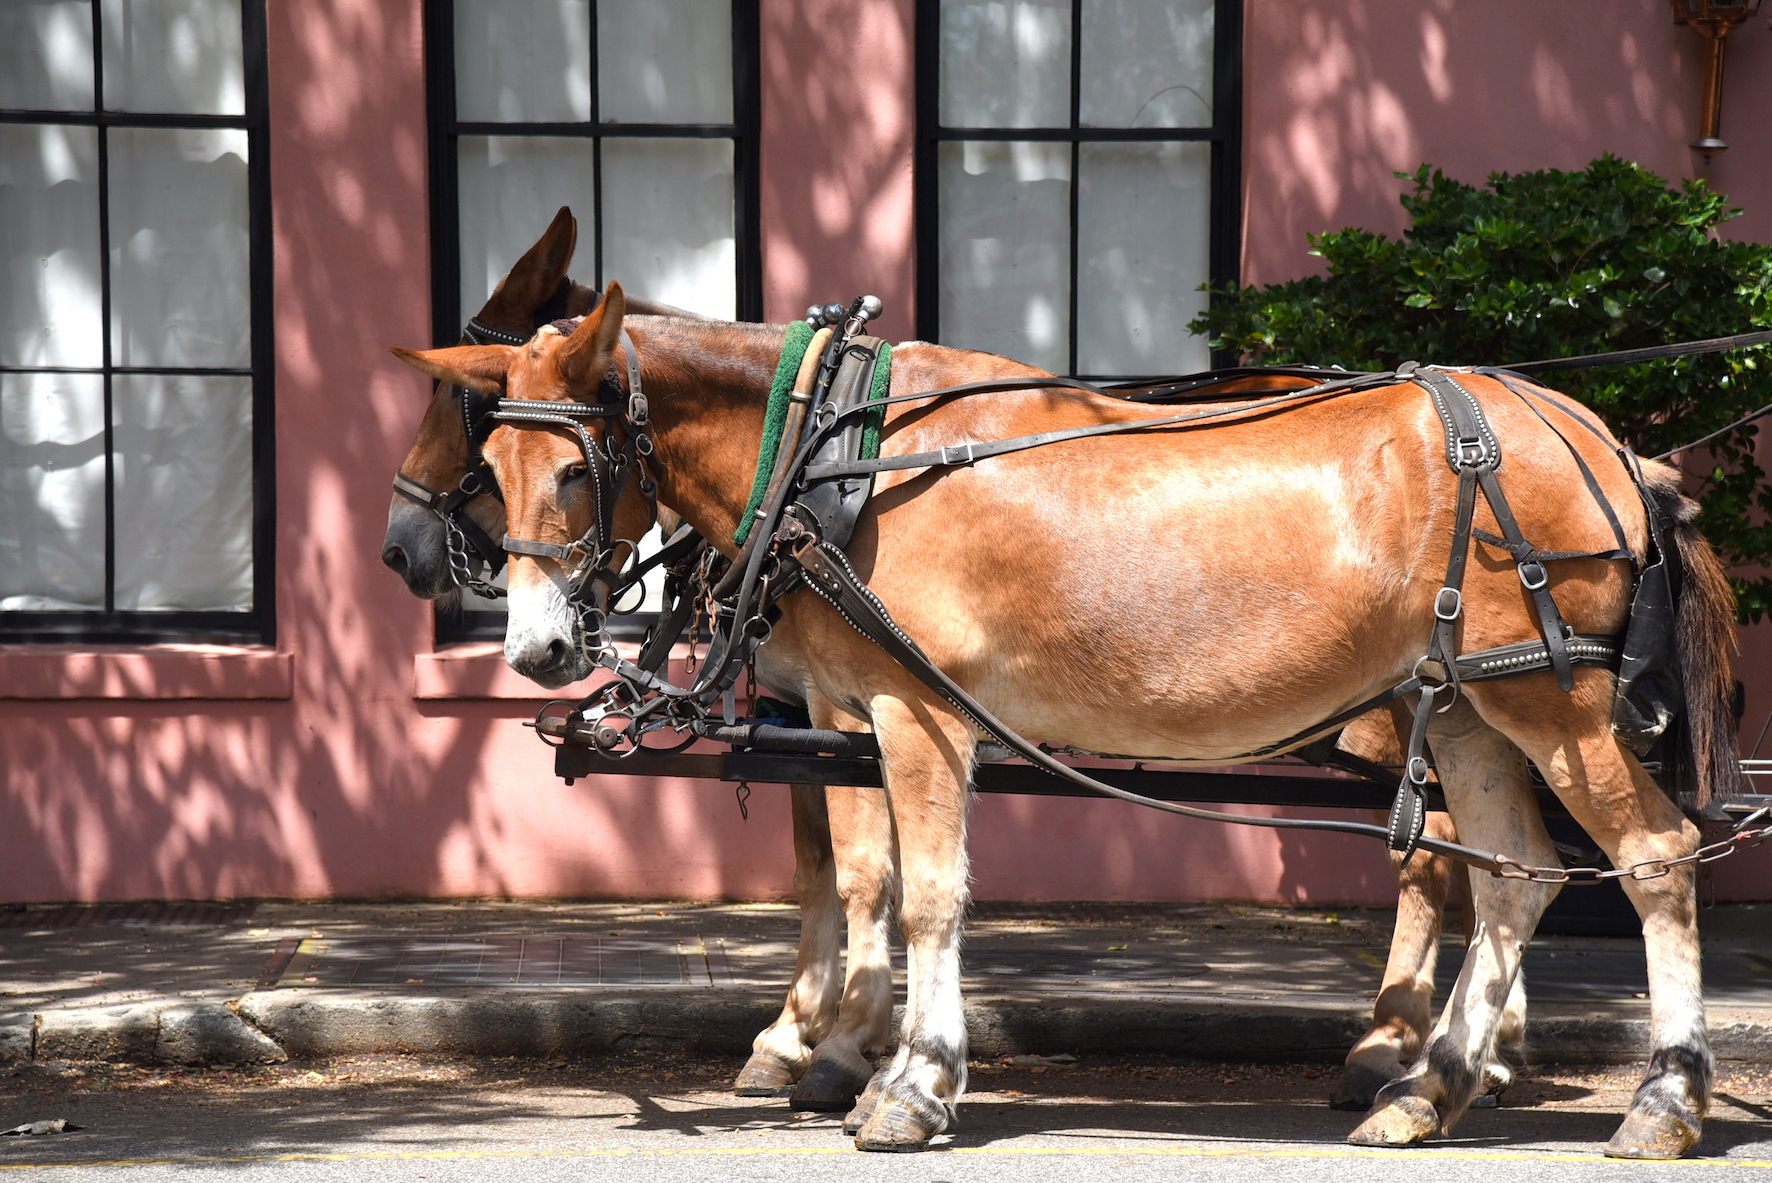 Horse carriage tour in Charleston, South Carolina